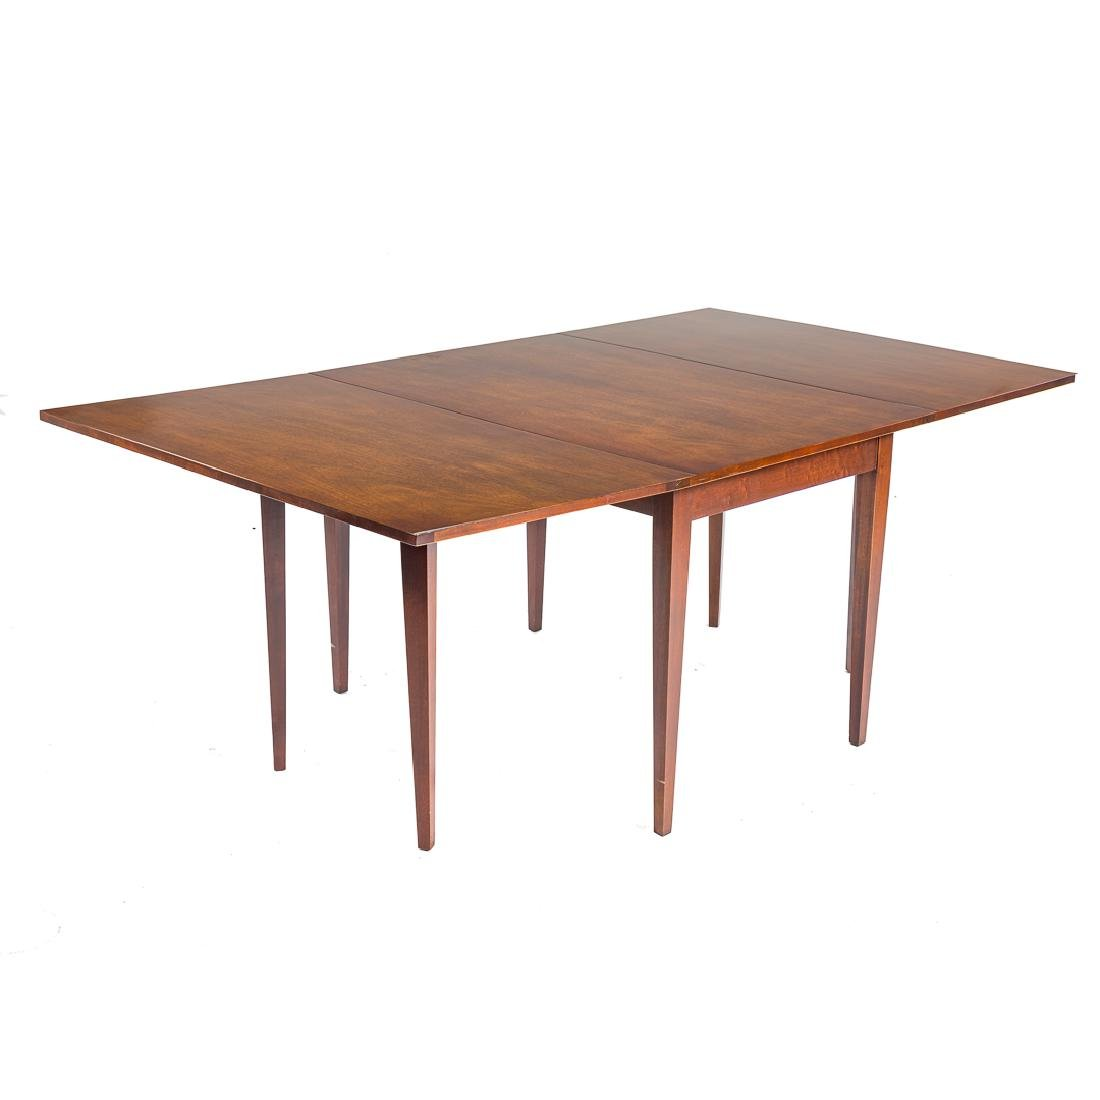 Federal style mahogany drop leaf dining table,